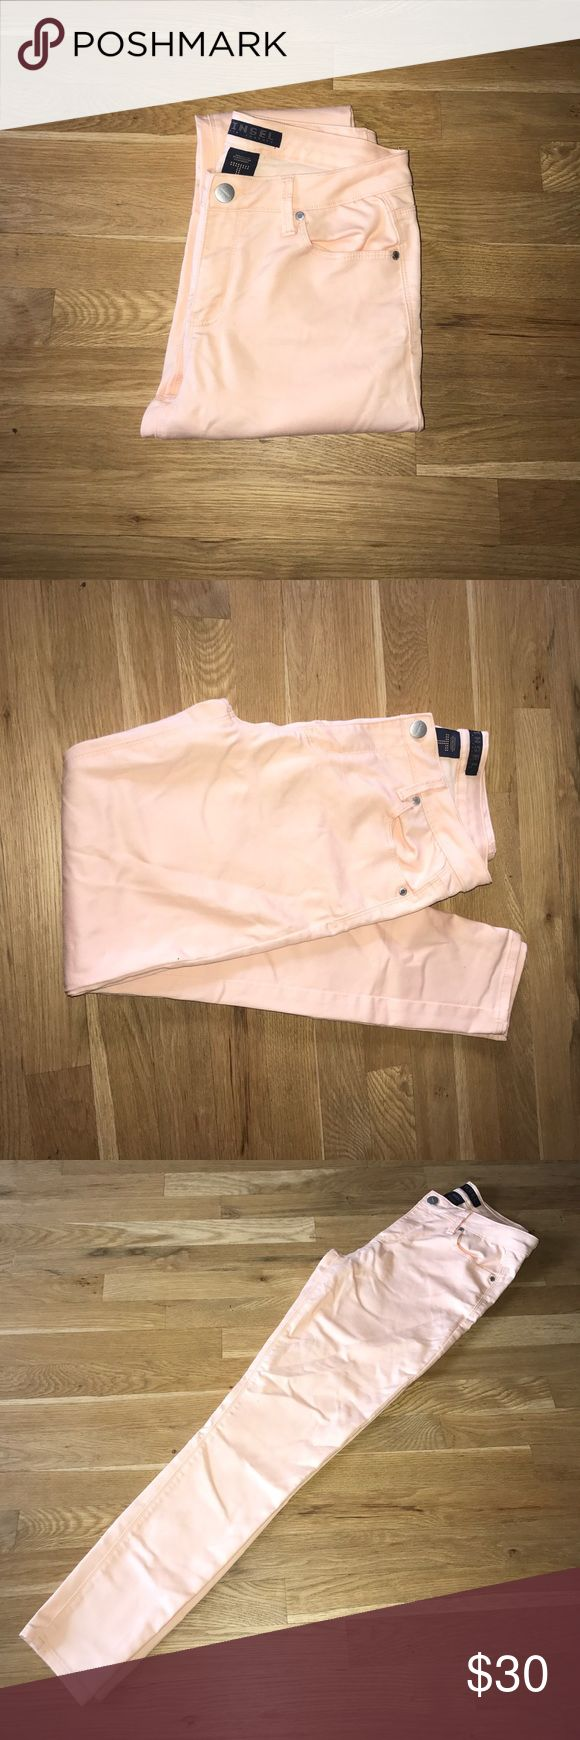 Tinsel peach skinny jeans Size 29 NEW New tinseltown peach skinny jeans. SiZe 29. Great summery color ! New without tags Tinseltown Jeans